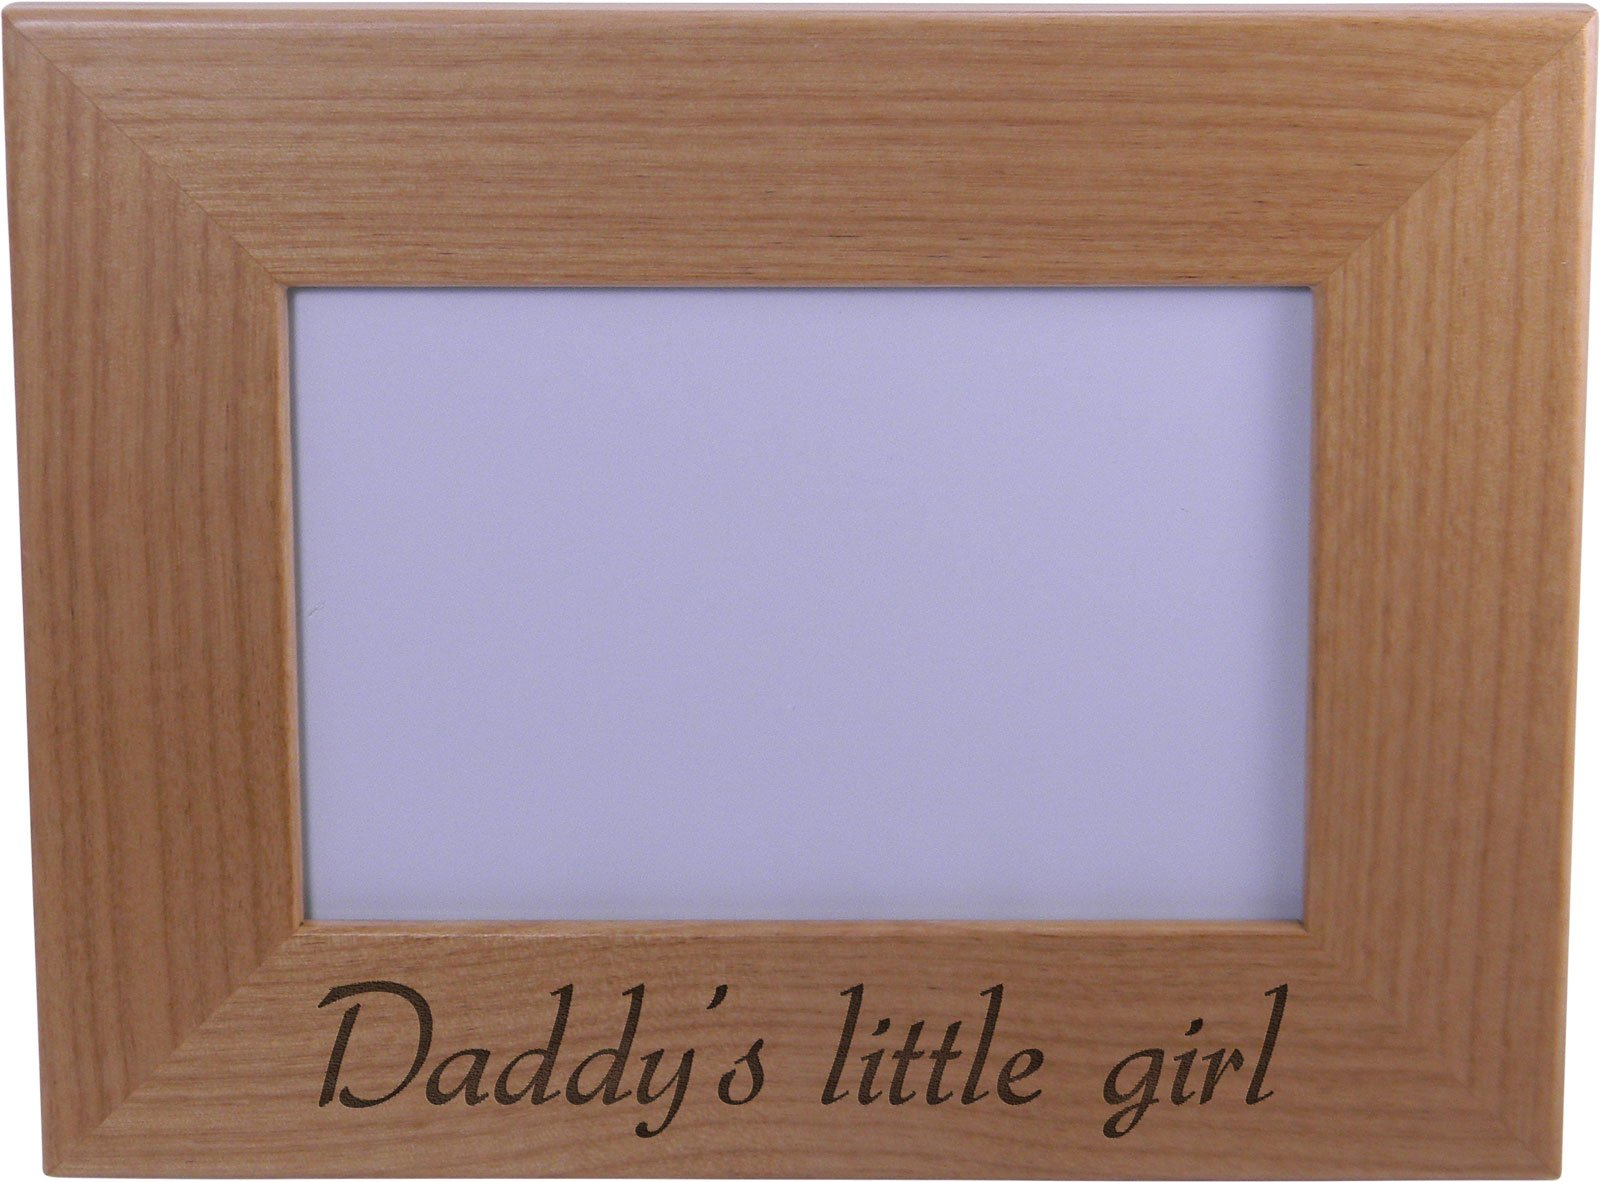 Daddy's Little Girl - Wood Picture Frame Holds 4x6 Inch Photo - Great Gift for Father's Day Birthday or Christmas Gift for Dad Grandpa Papa Husband